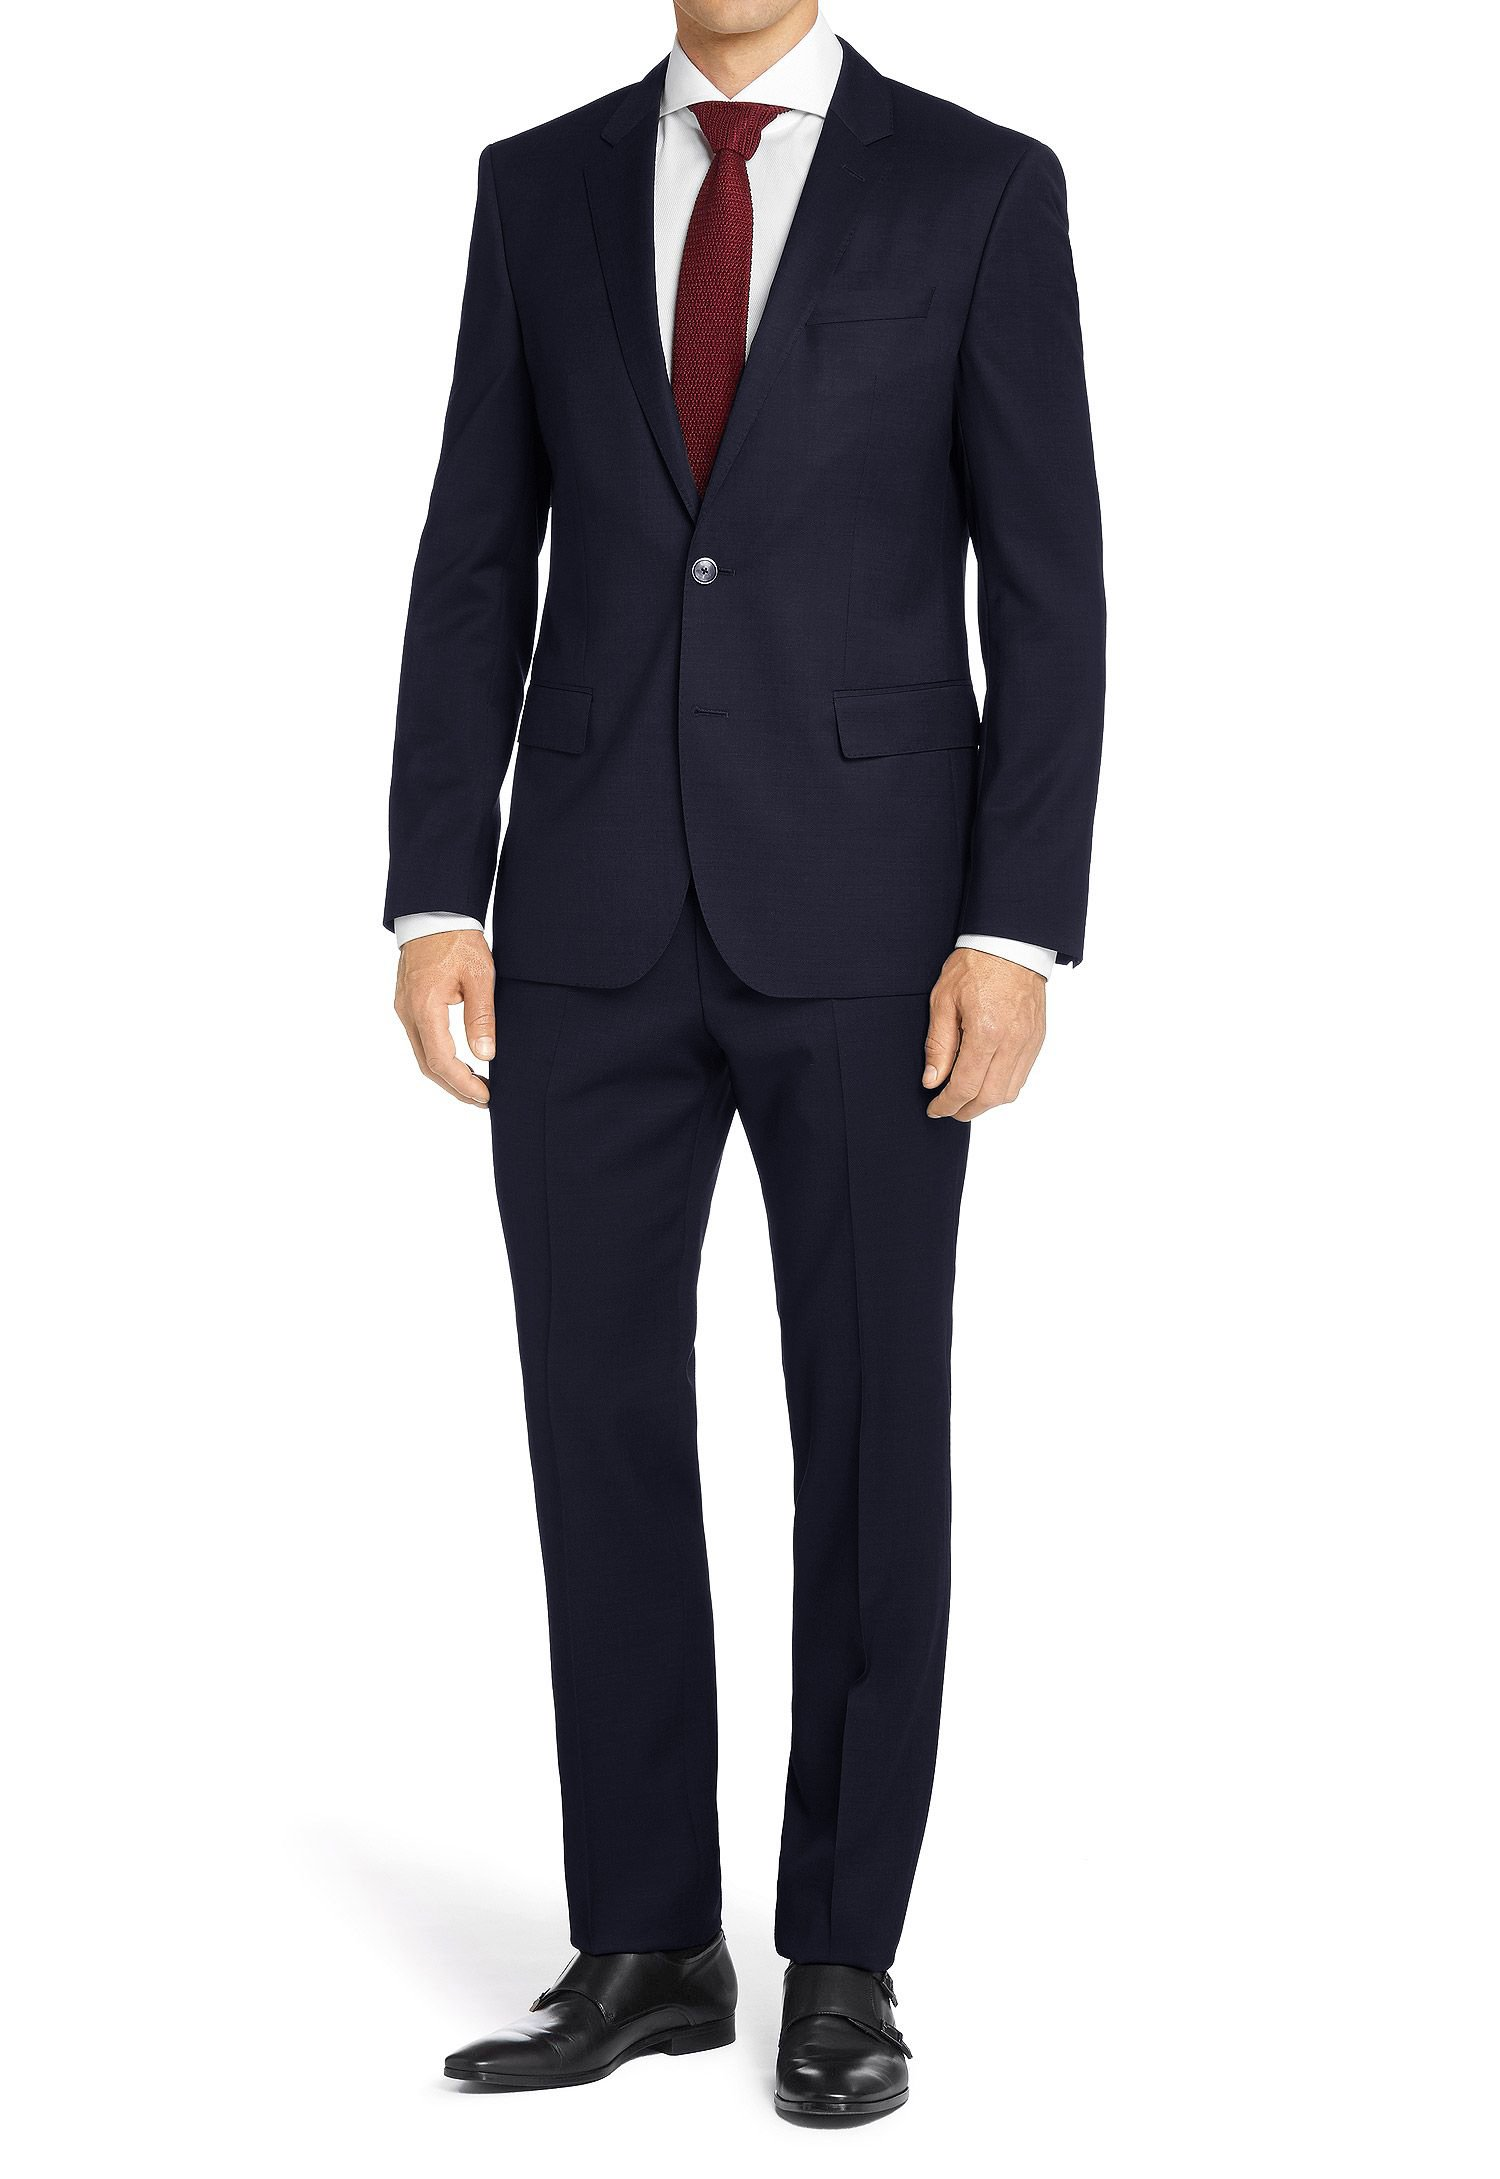 MDRN Uomo Mens Classic Fit 2 Piece Suit, Navy, Size 42Lx36W